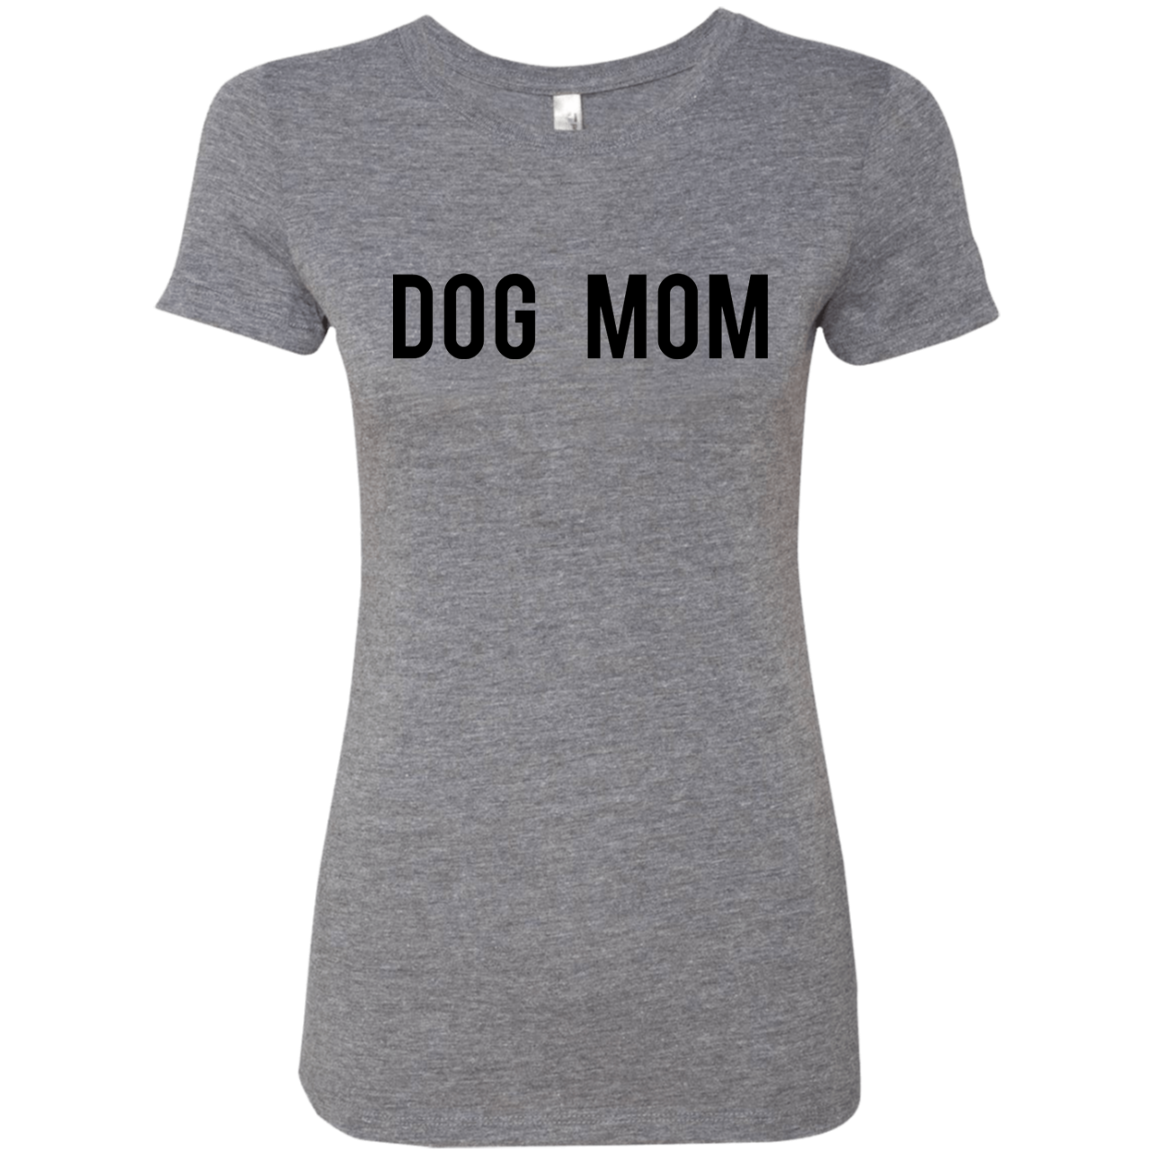 Dog Mom Women's Classic Tee - Trendy Tees